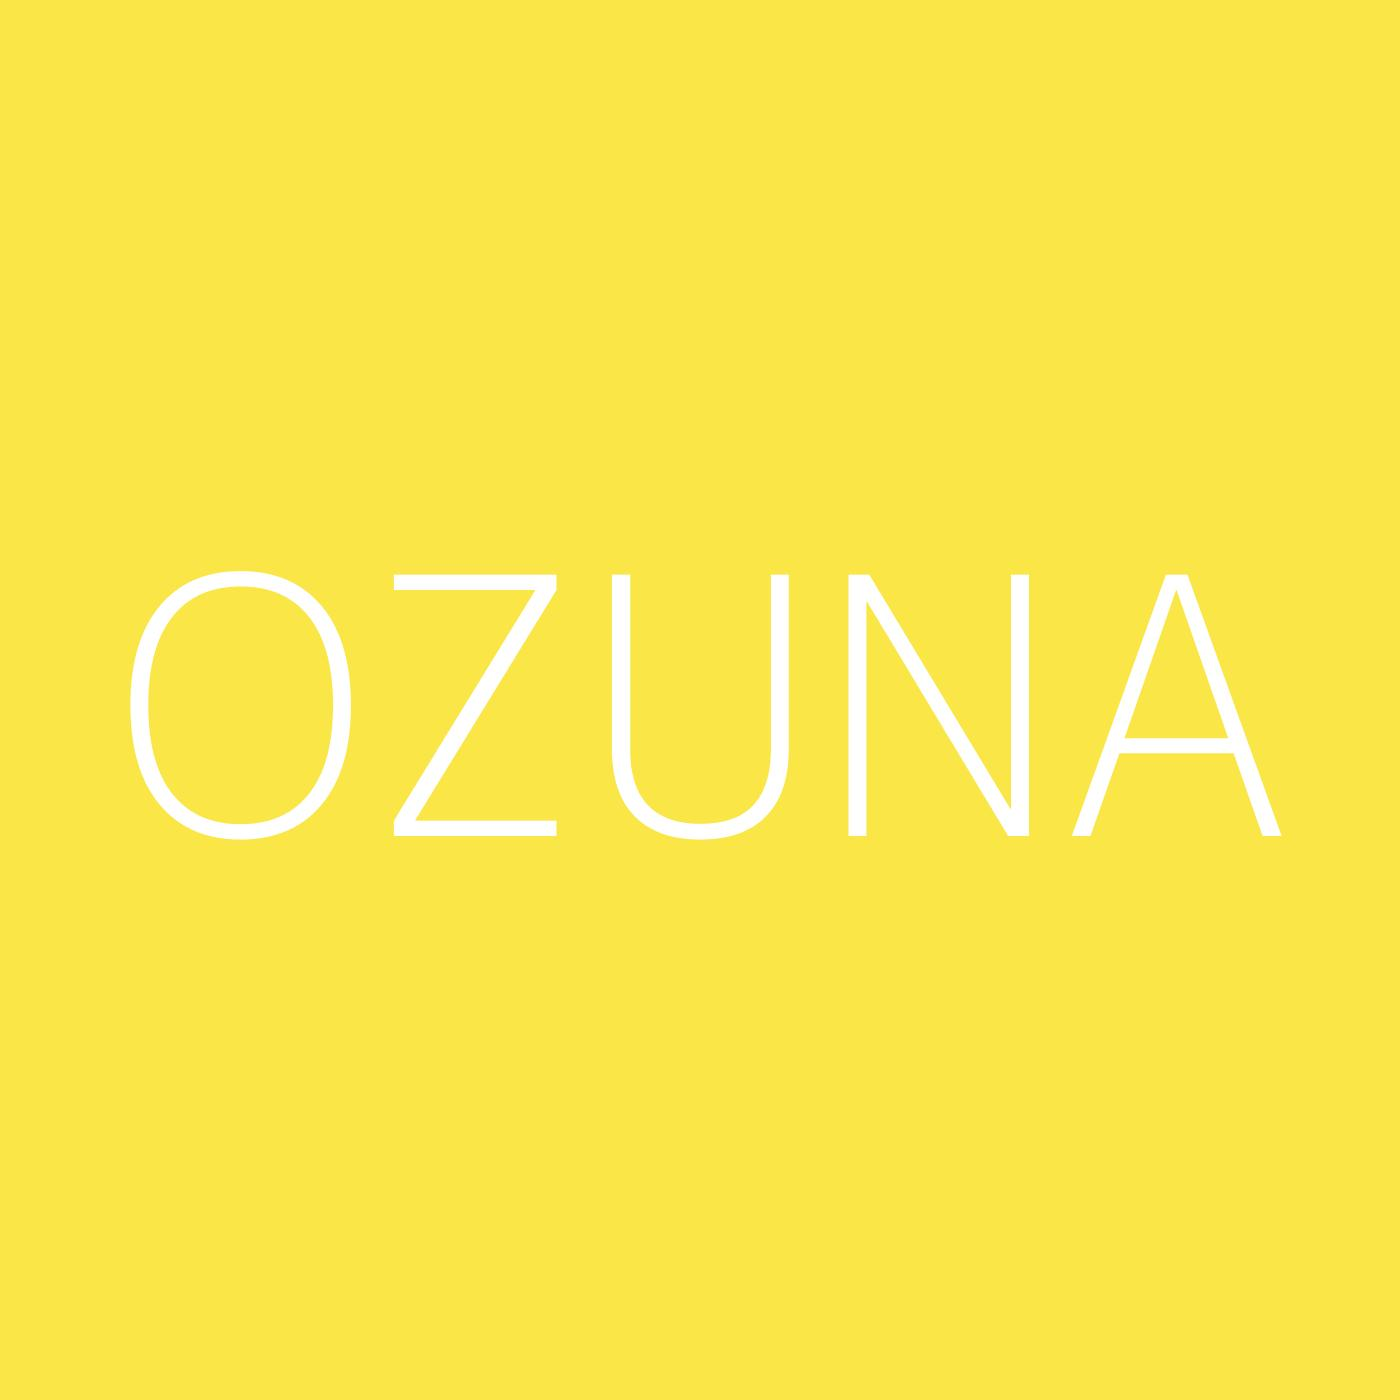 Ozuna Playlist Artwork